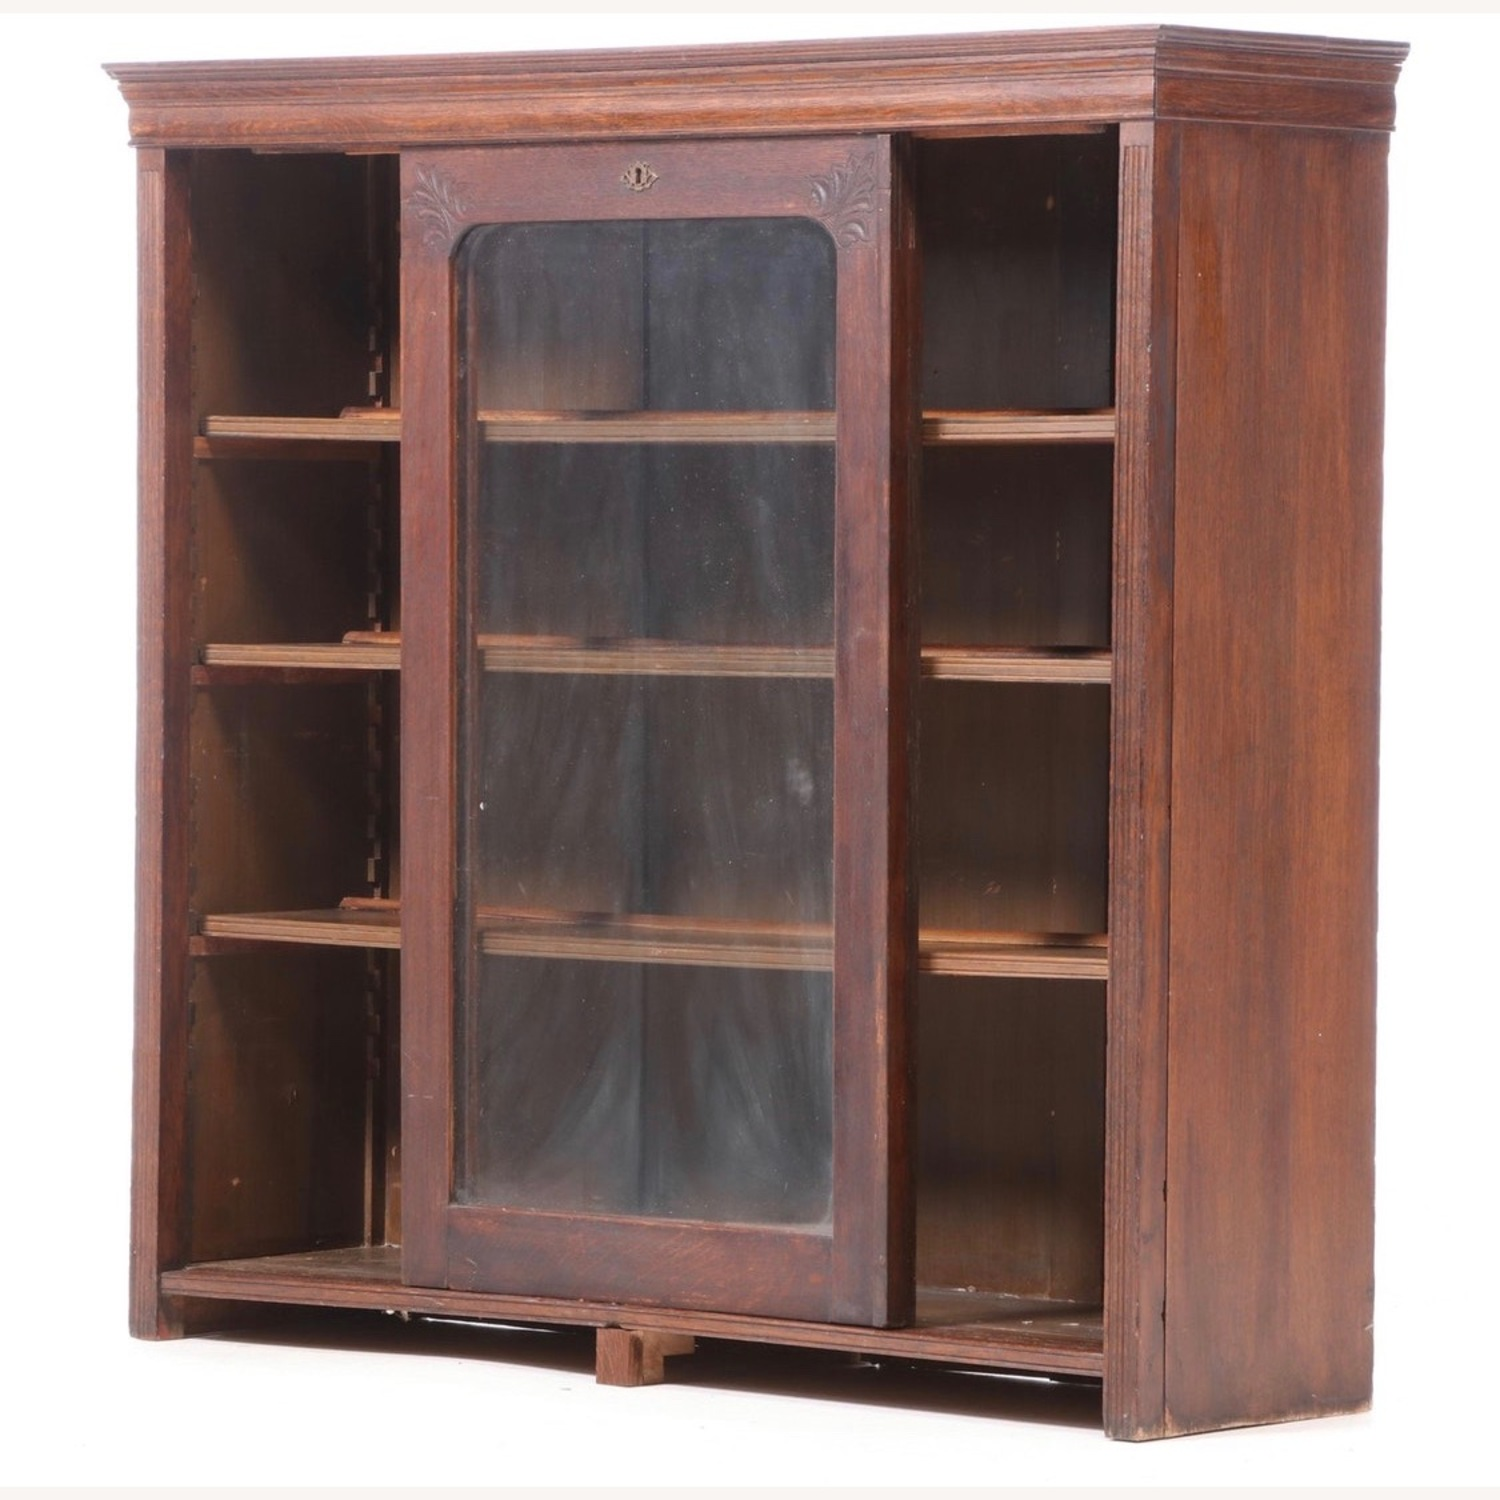 Oak Bookcase Cabinet, Early 20th Century - image-4